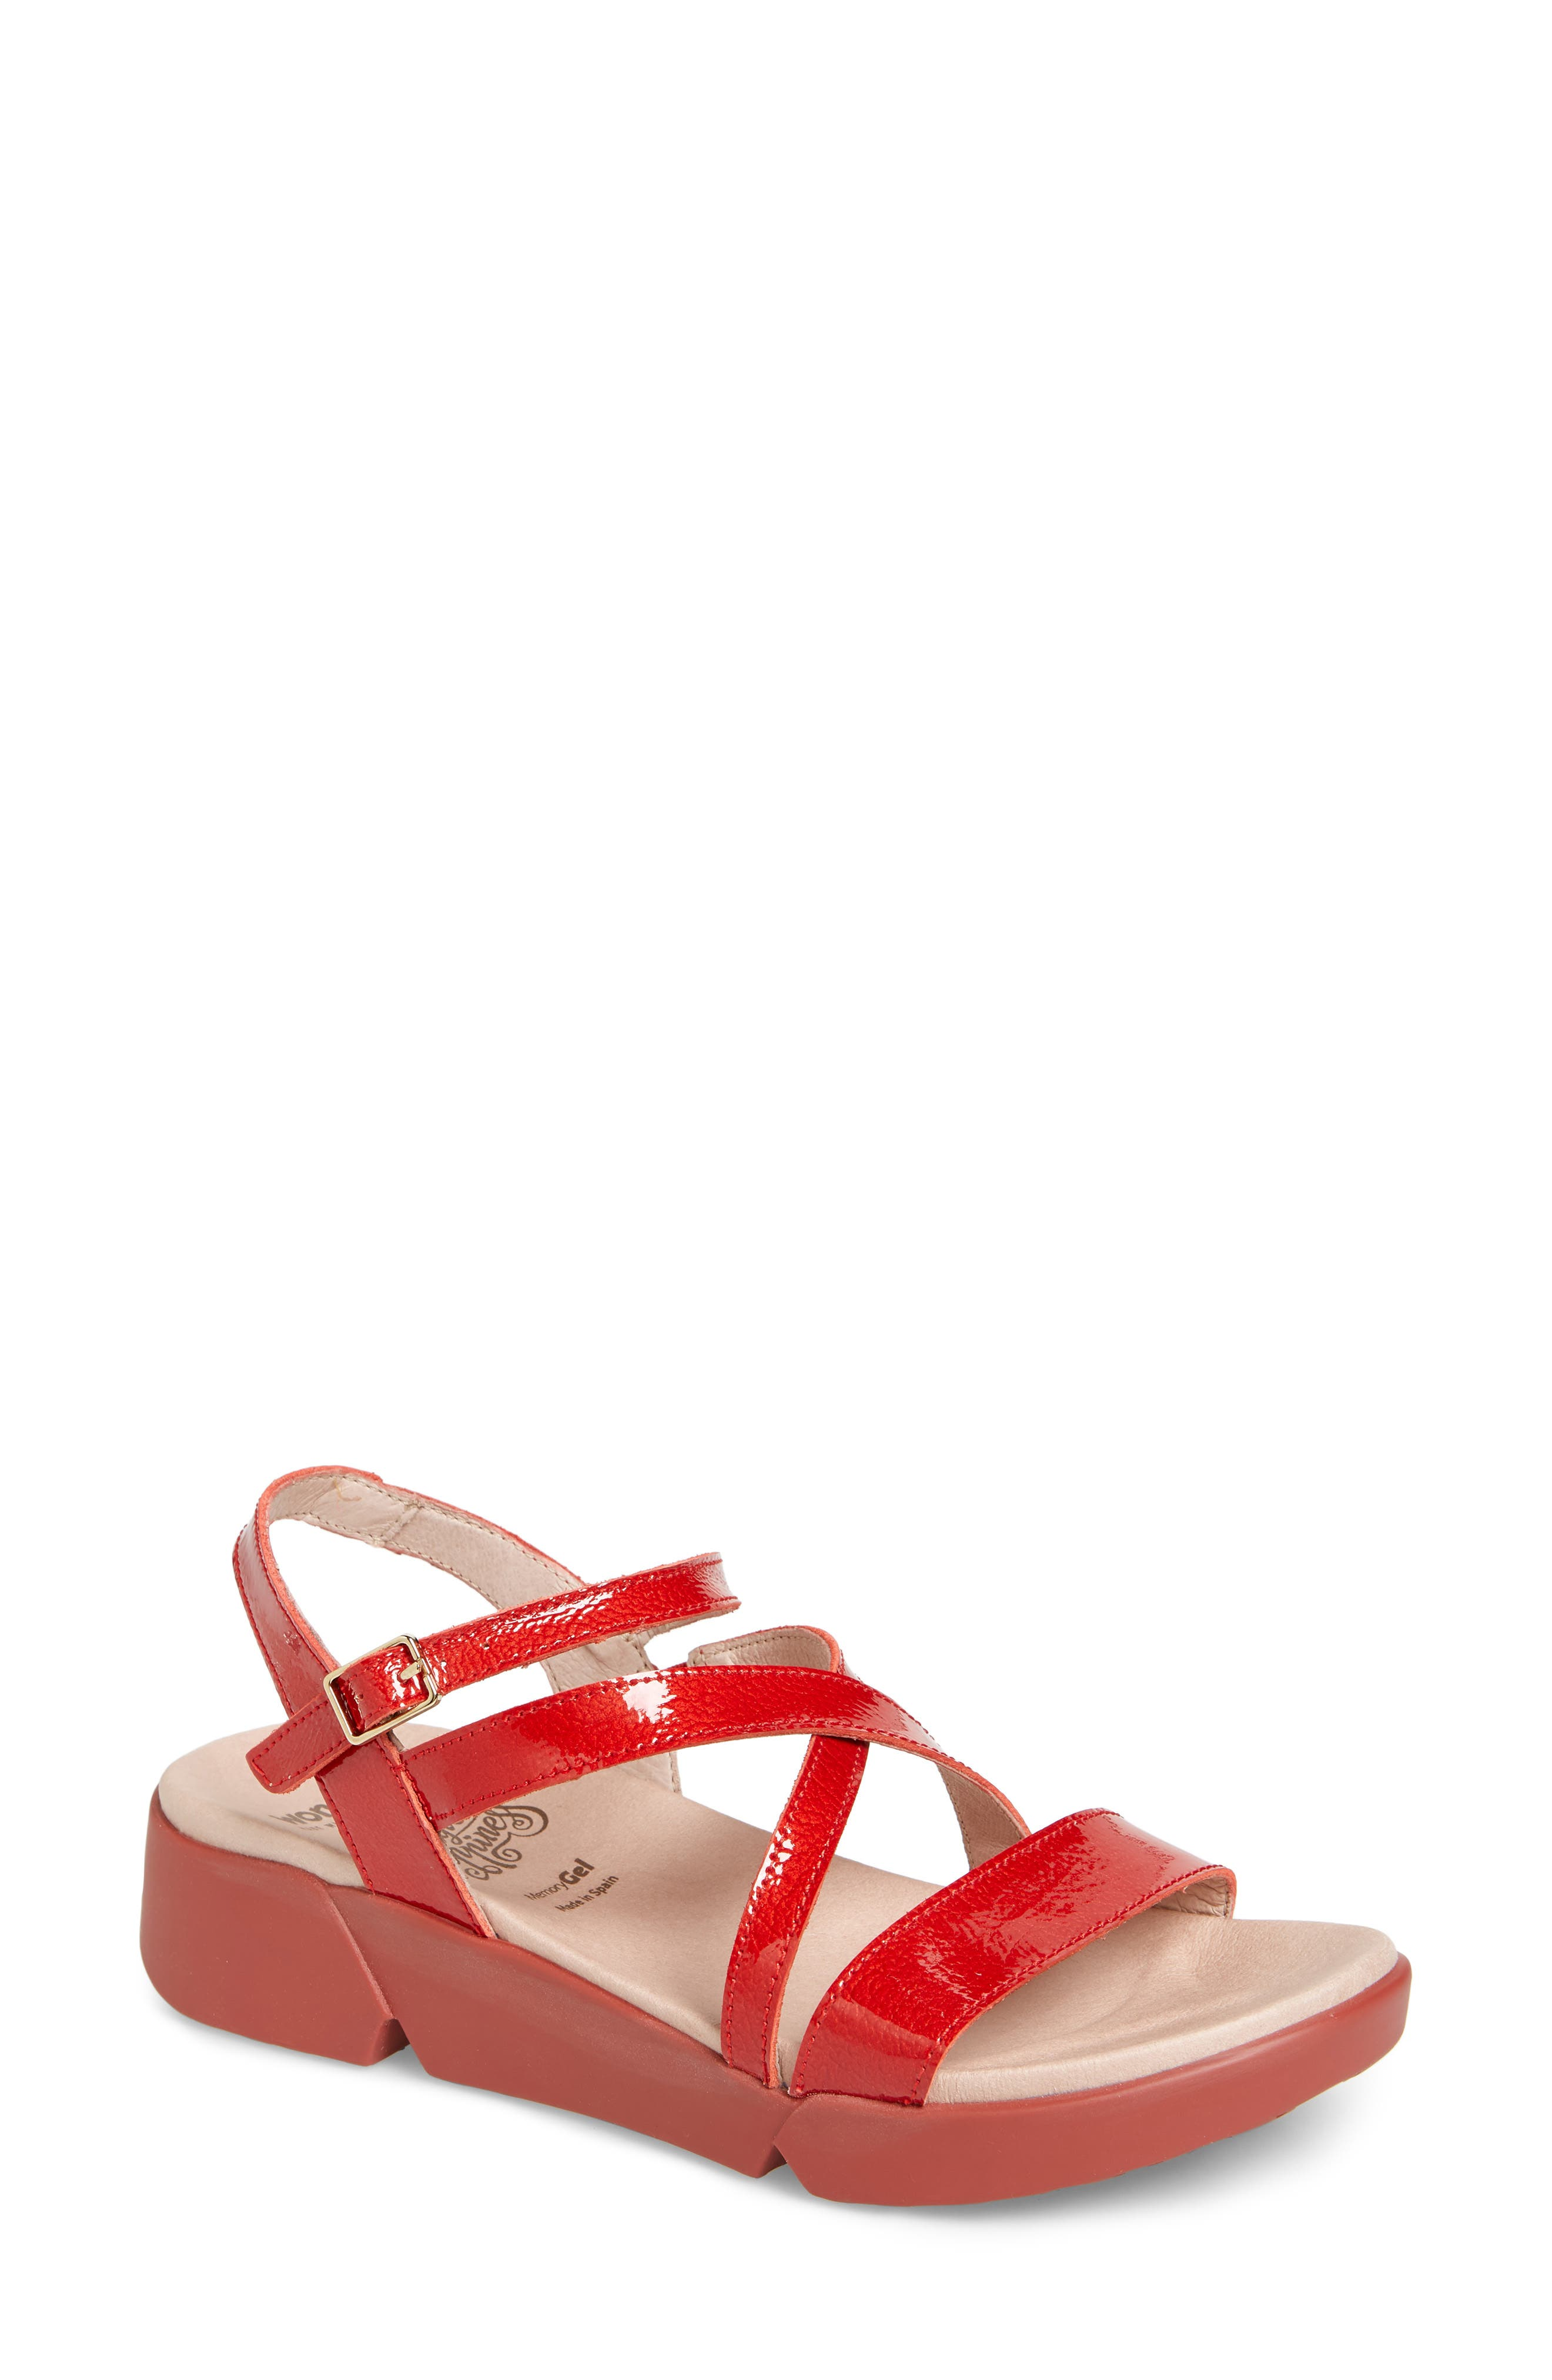 Wedge Sandal,                             Main thumbnail 1, color,                             Red Patent Leather